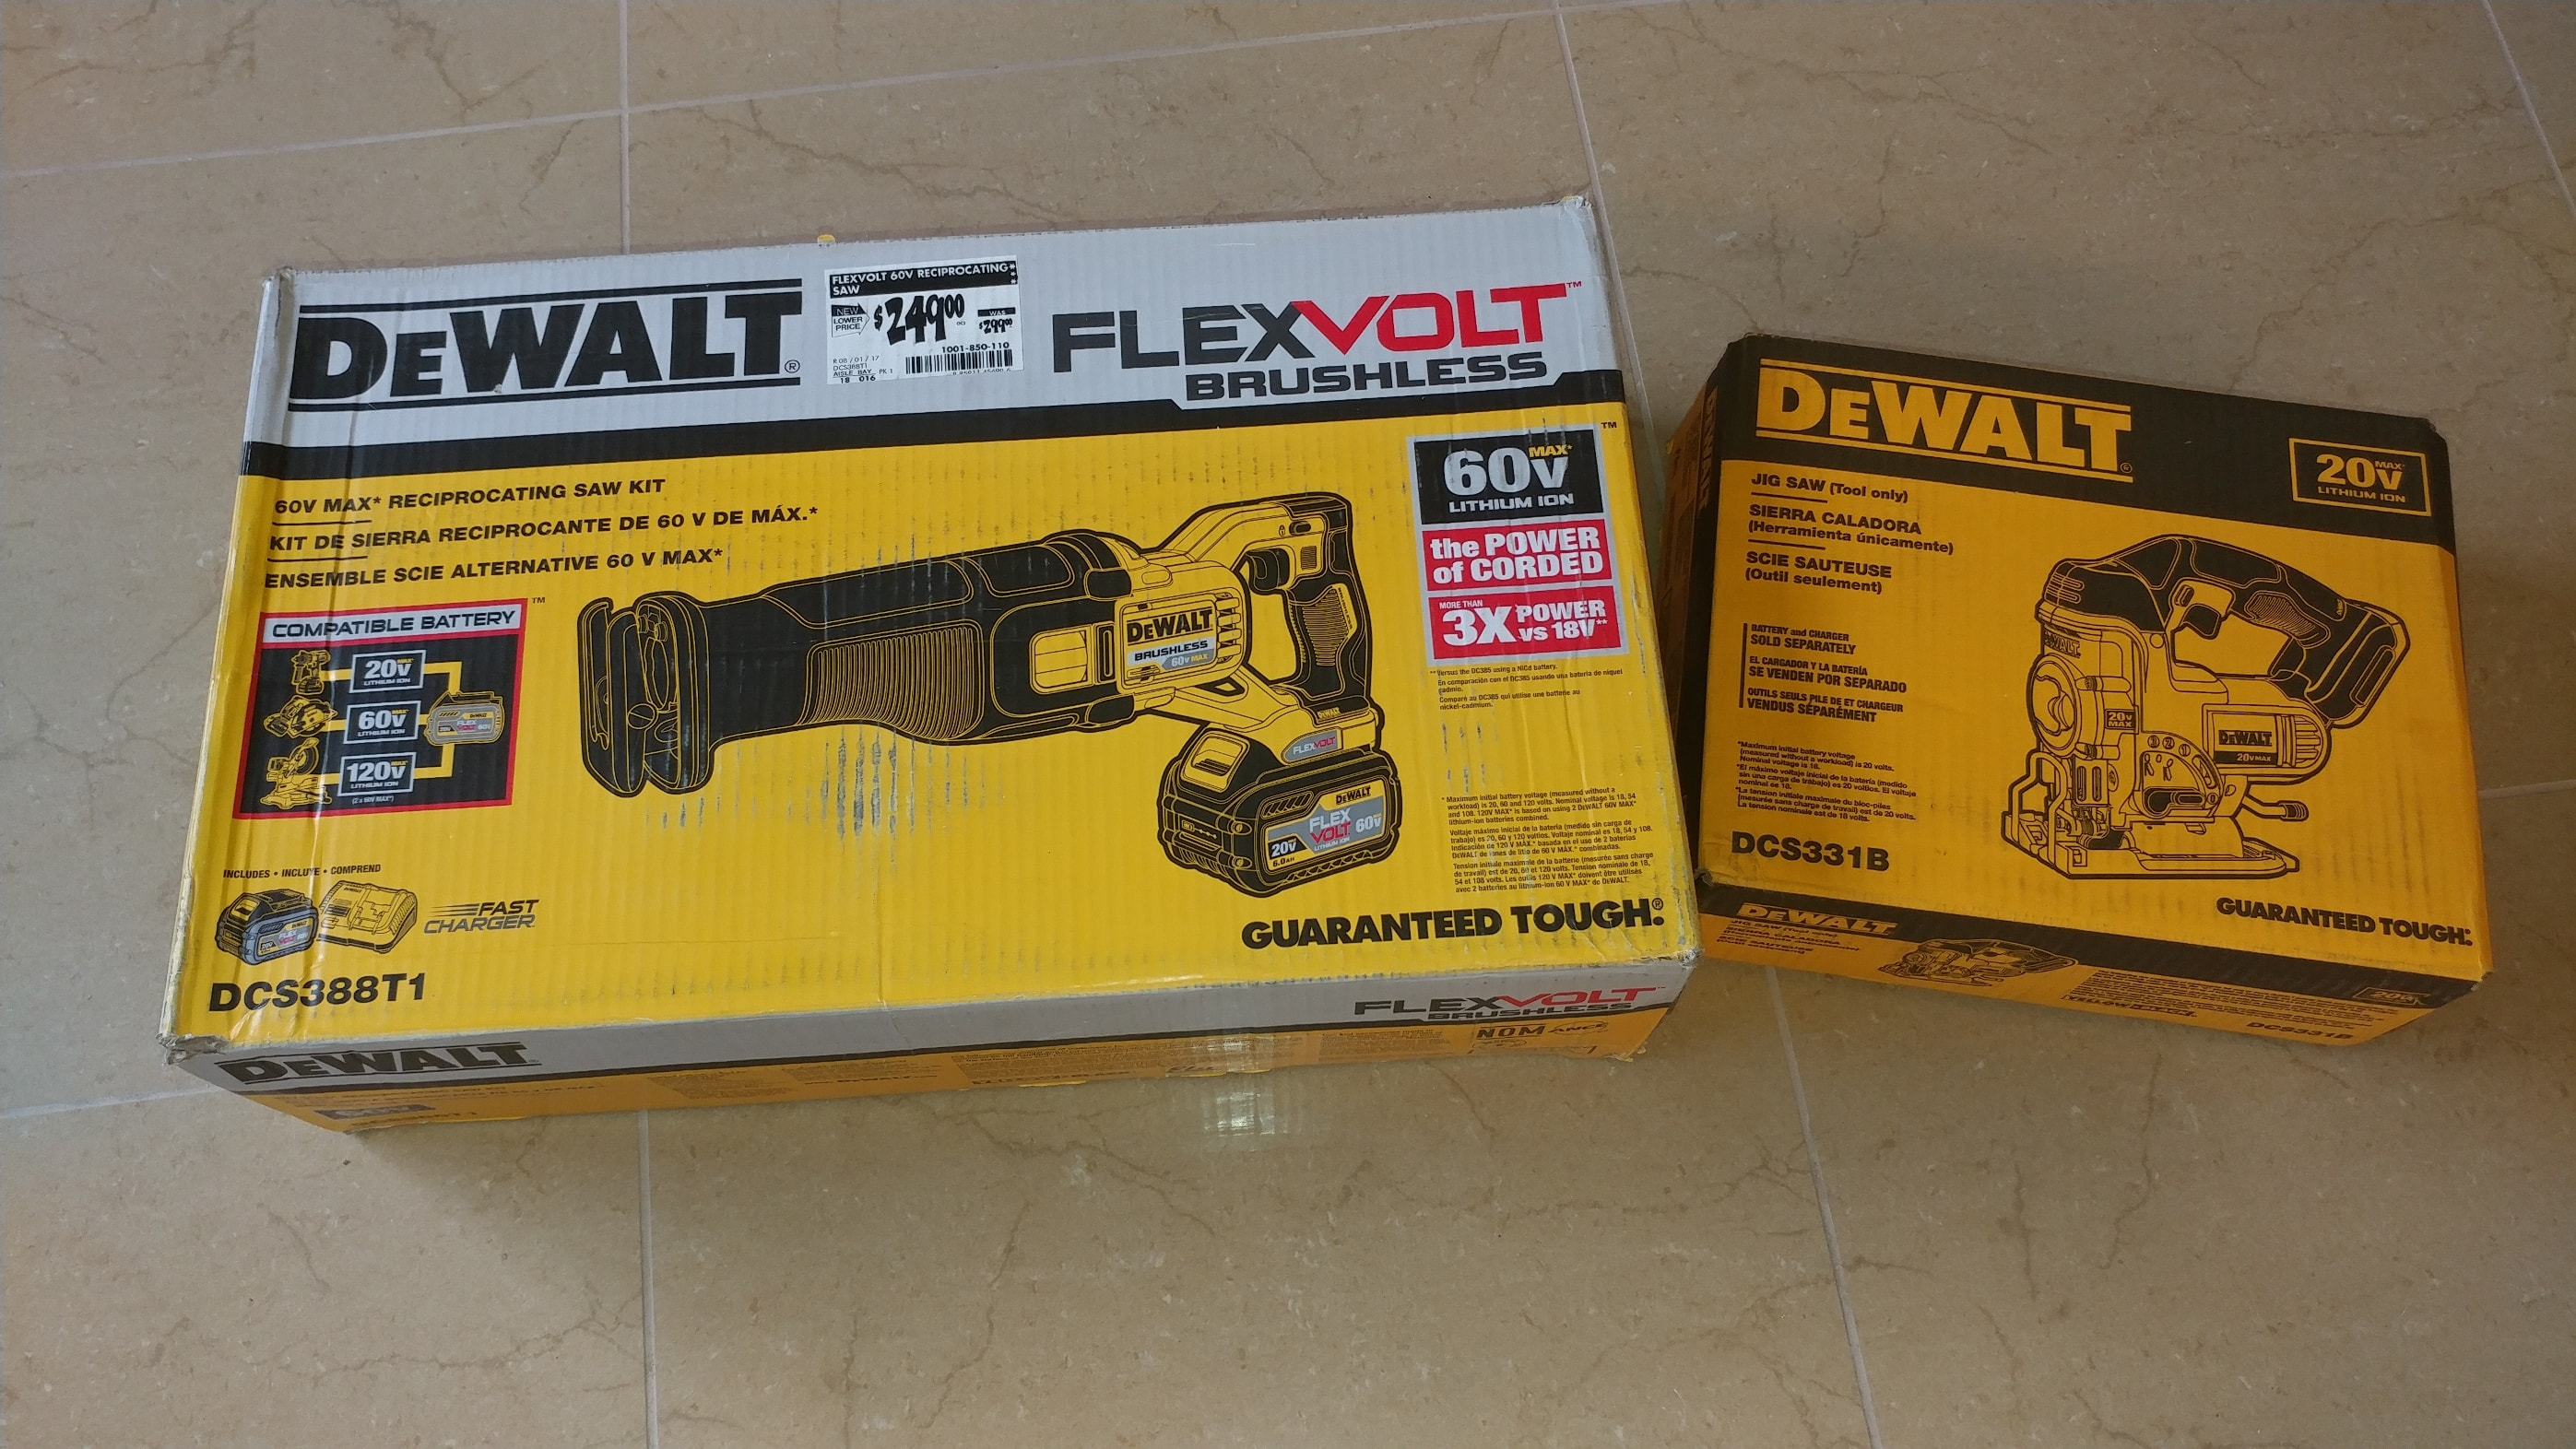 Dewalt 60V Reciprocating Saw Kit with bonus battery or tool for $249 at Home Depot (In store only YMMV)